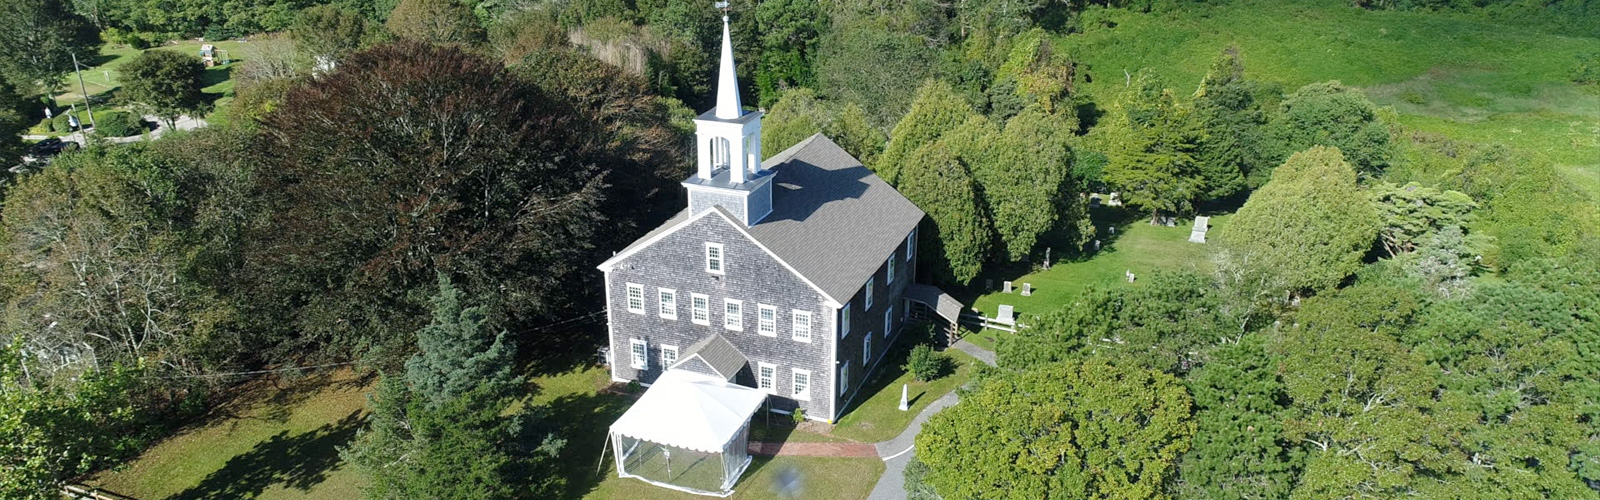 FJC historic East End Meeting House, built in 1797